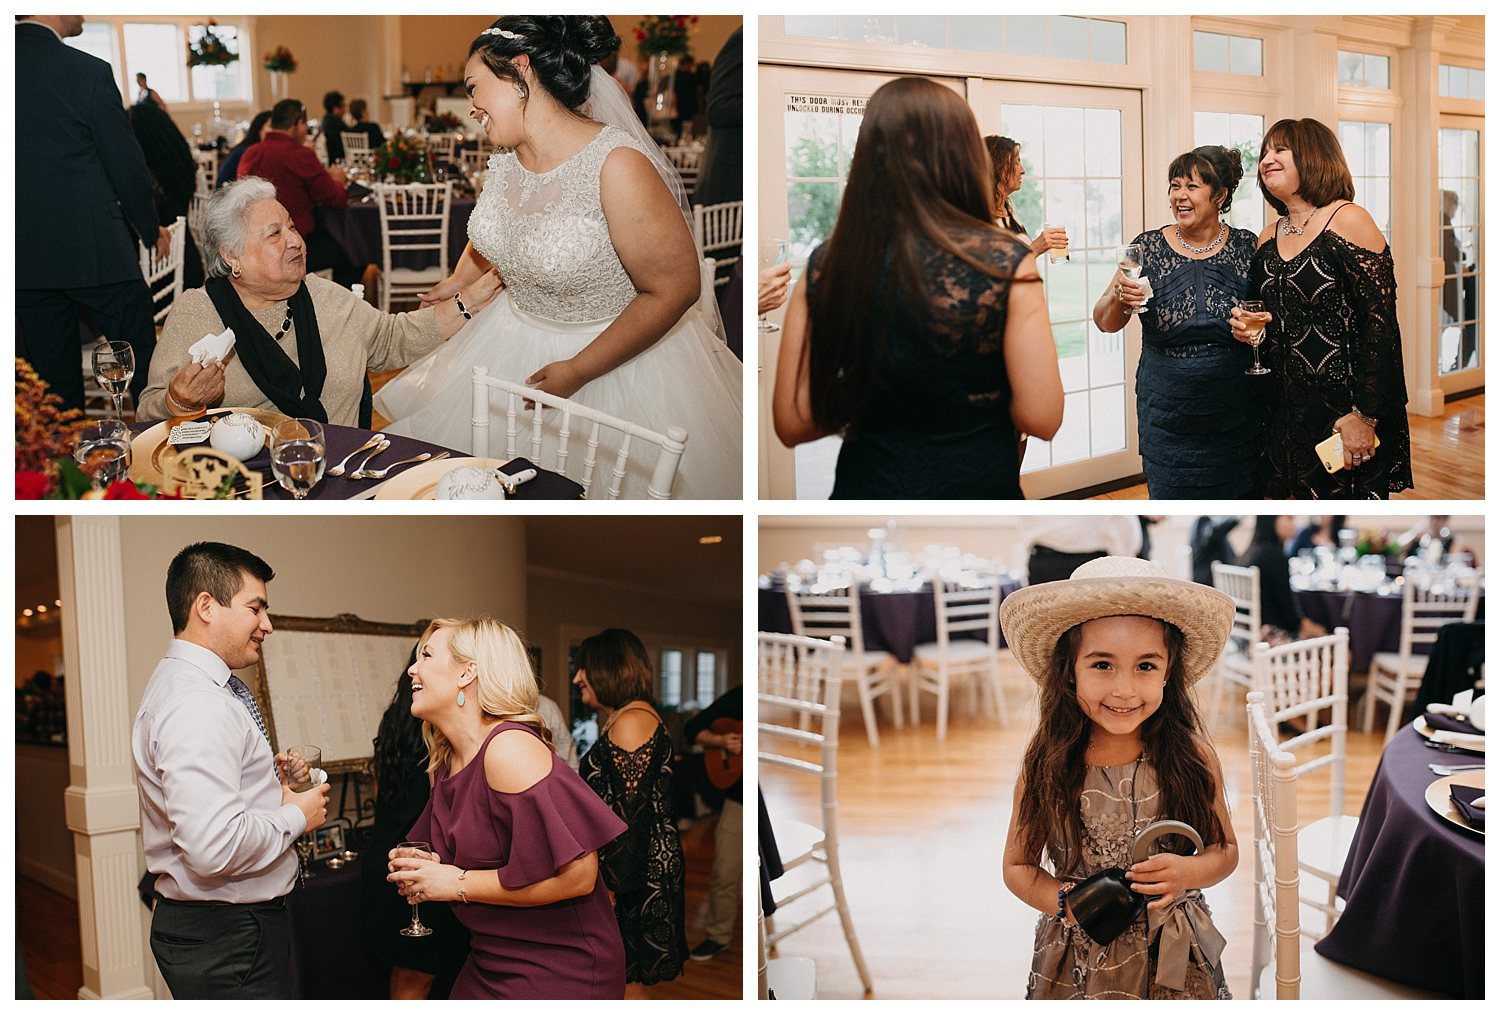 Kelsey_Diane_Photography_Hawthorne_House_Parkville_Kansas_City_Wedding_Veronica_Pat_0065.jpg